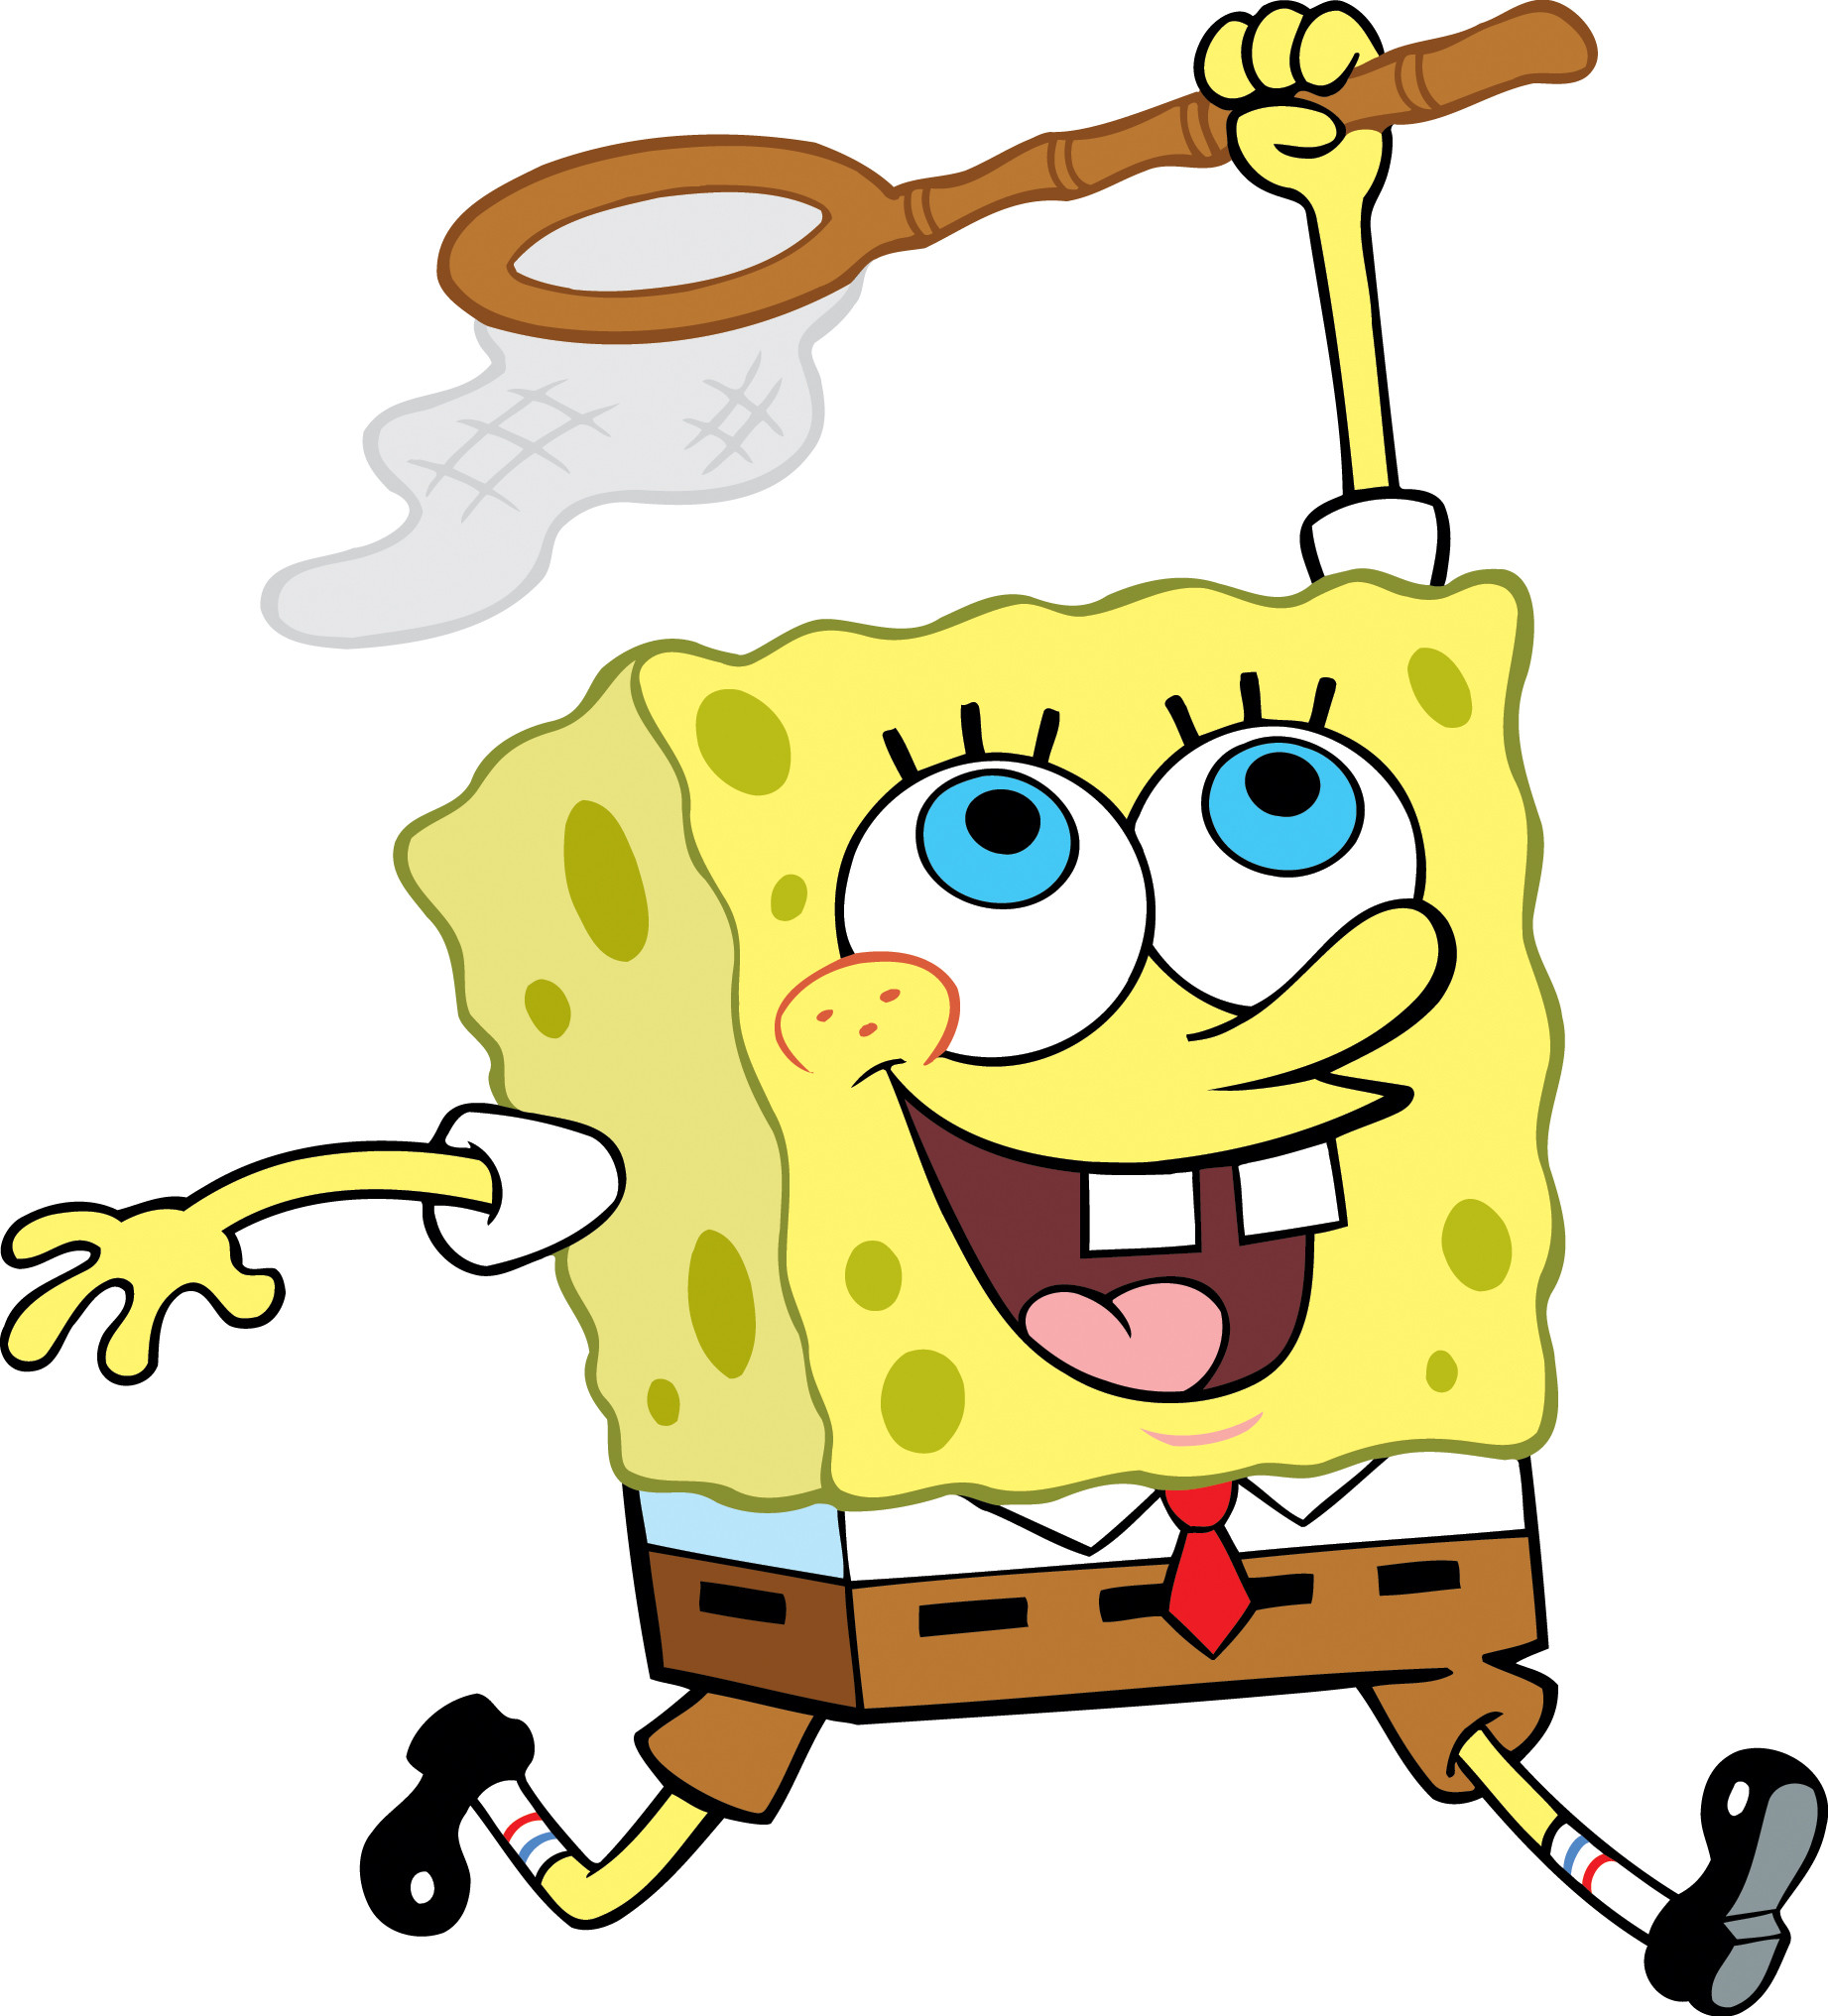 1843x2033 HD Wallpaper and background photos of Spongebob for fans of Spongebob  Squarepants images.